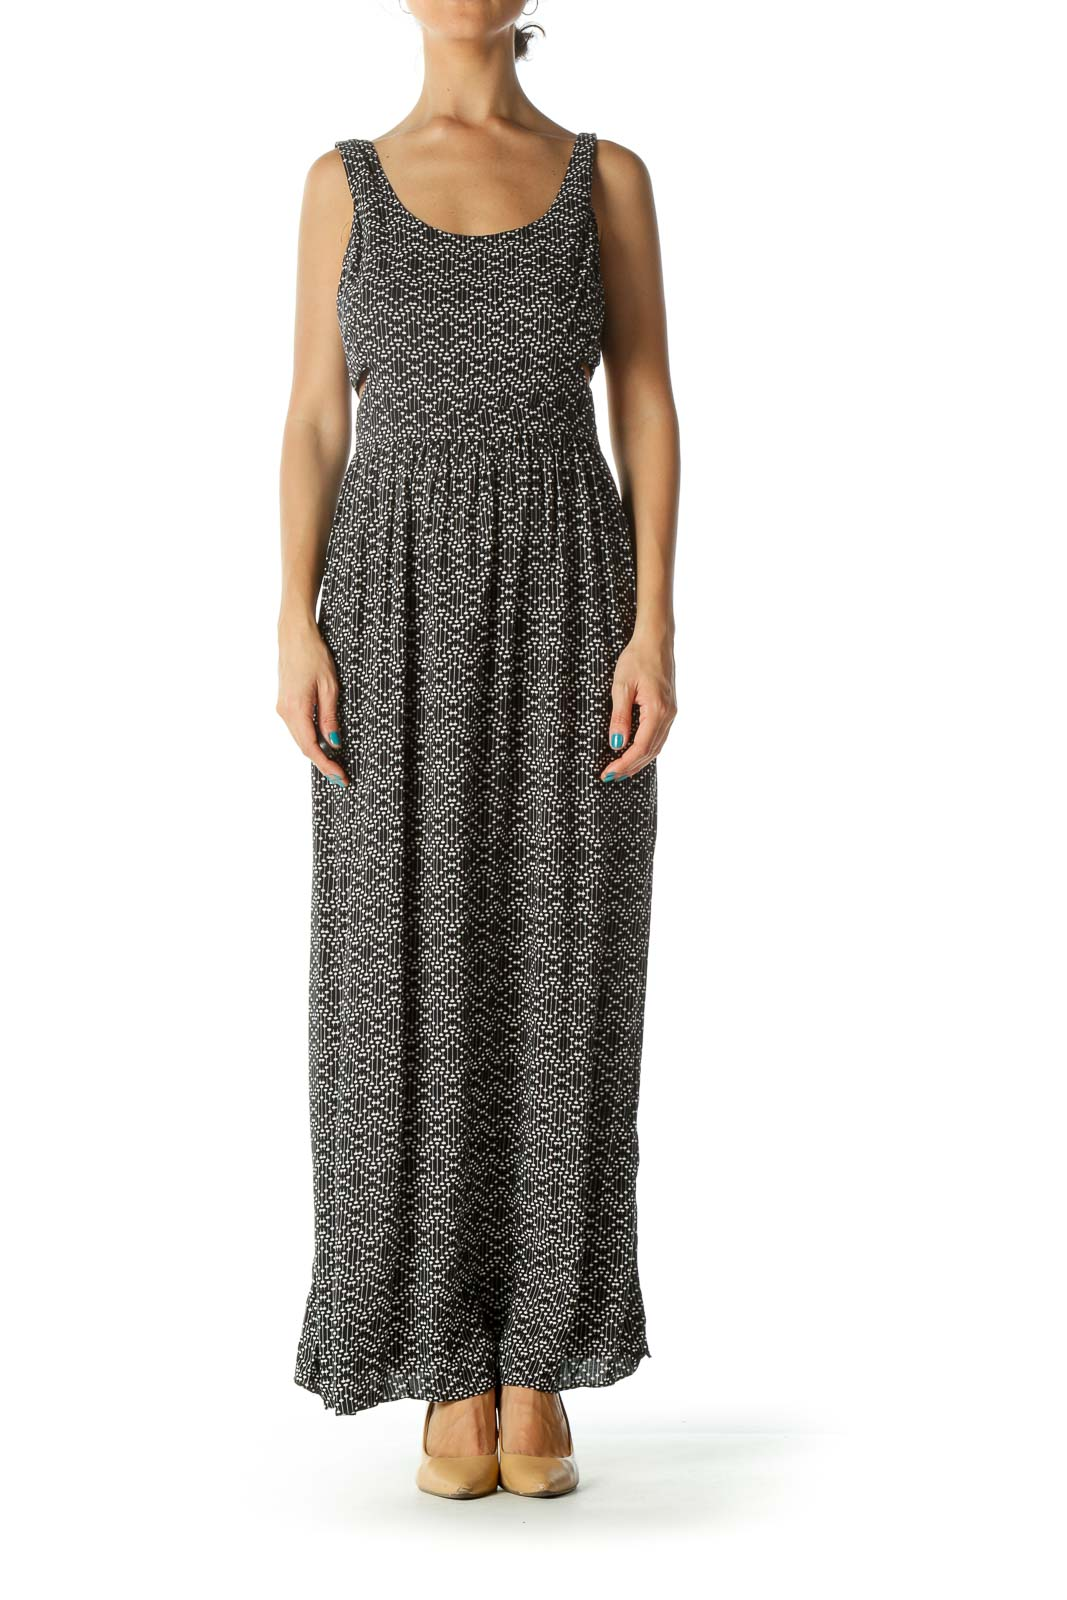 Black and White Print Cut-out Maxi Dress